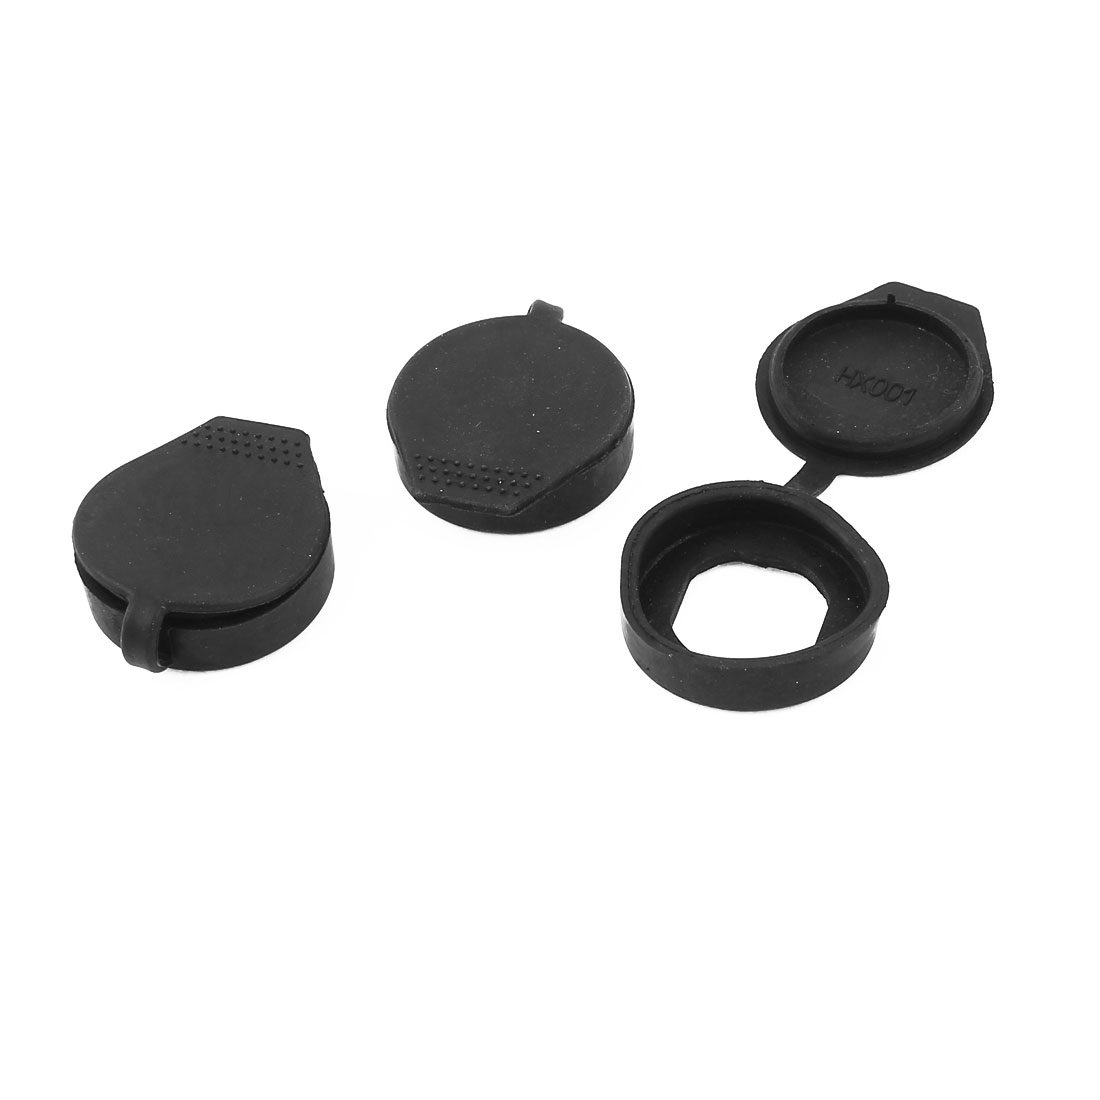 3 Pcs Rubber Key Panel Cam Lock Dust Waterproof Cover Black